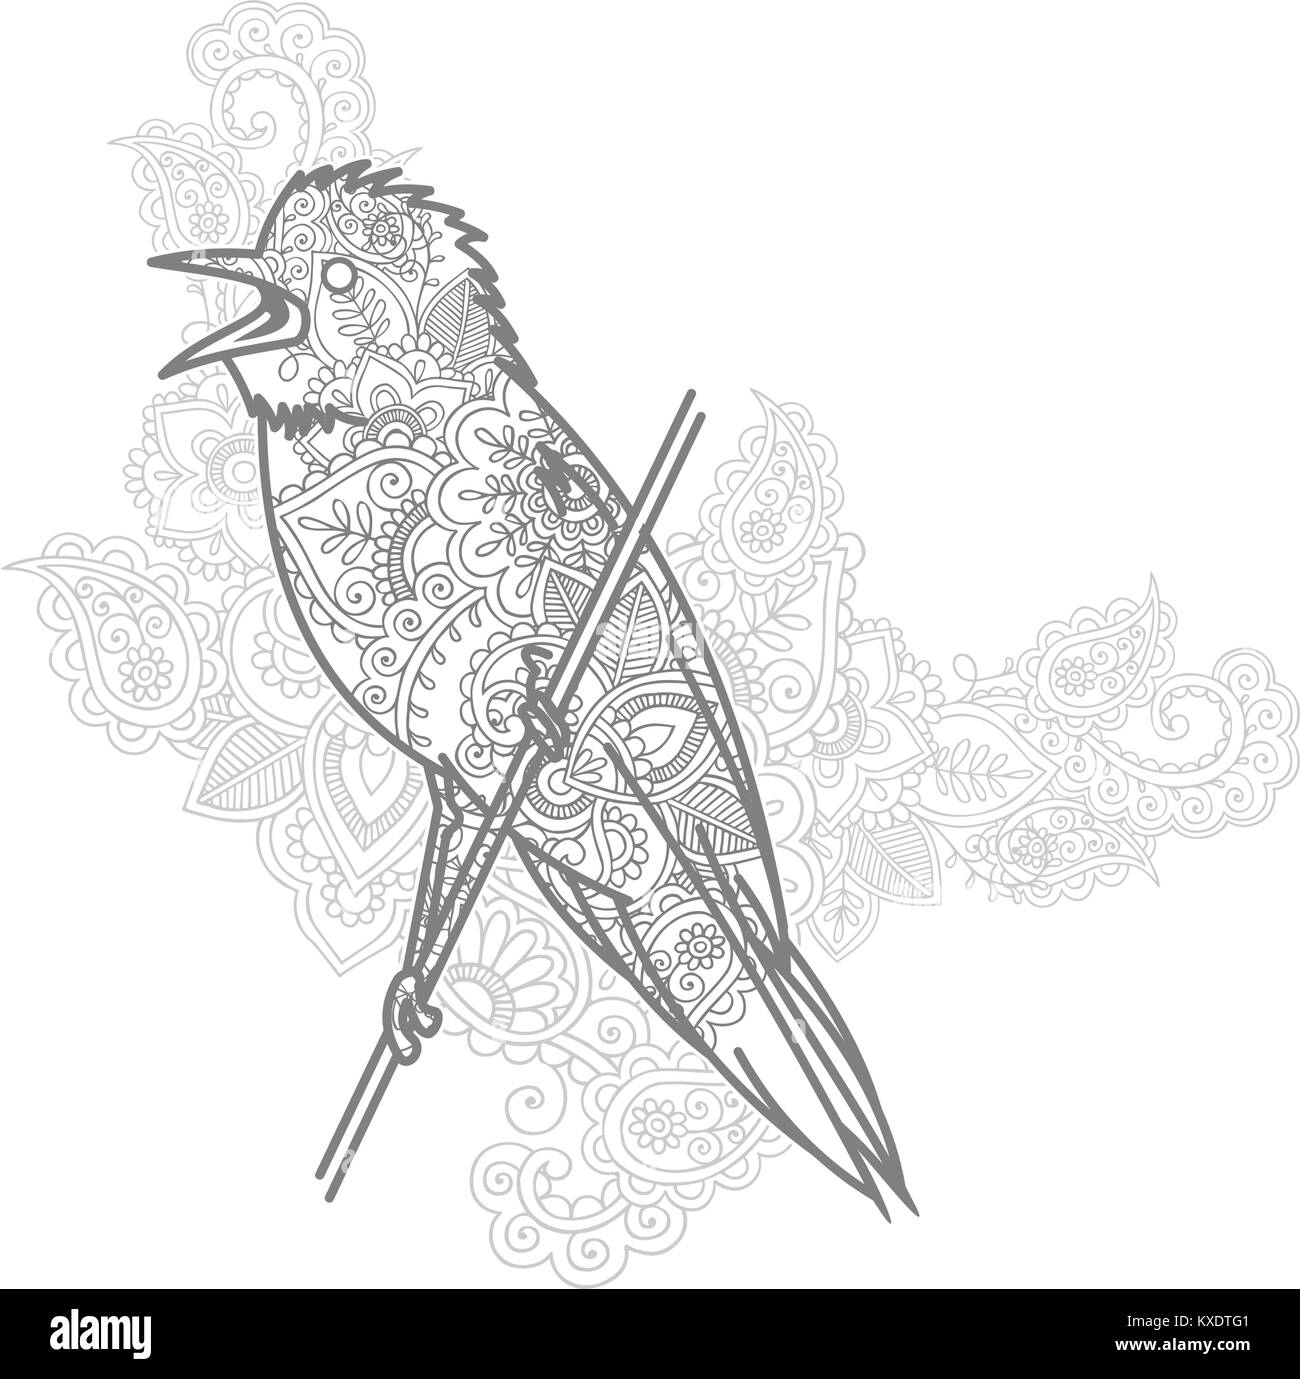 Hand Drawn Doodle Bird Paisley Adult Stress Release Coloring Page Zentangle Stylized Vector